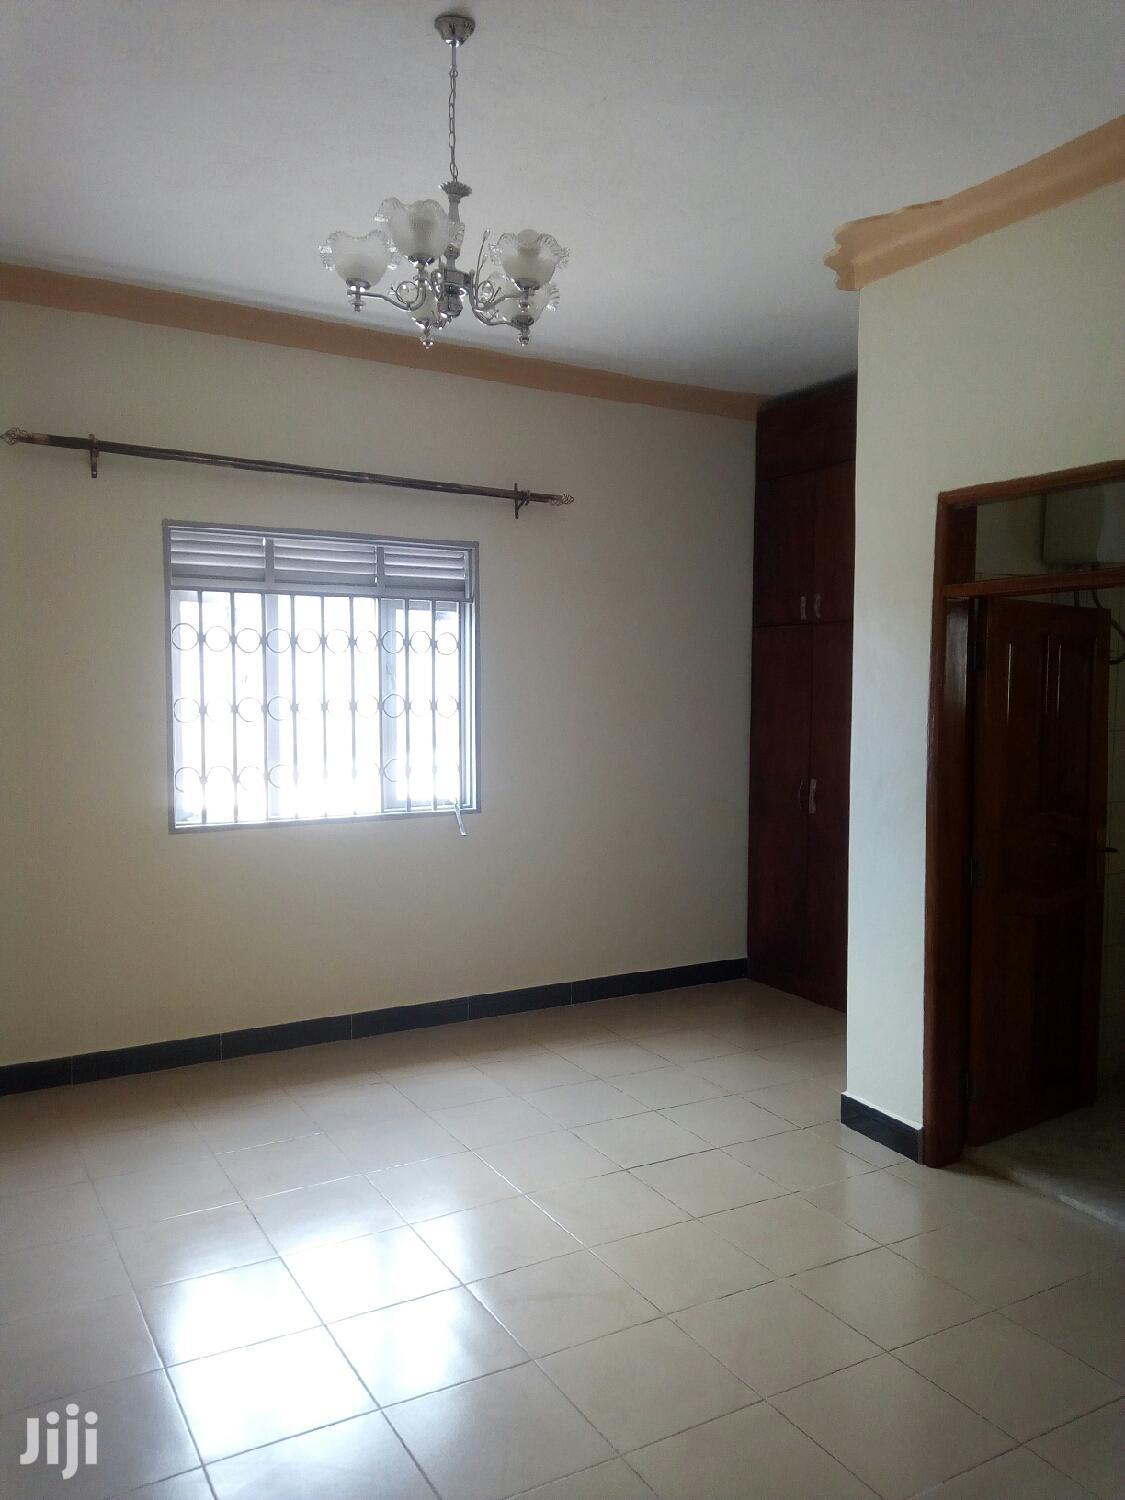 Executive Two Bedroom House for Rent in Kireka Mbalwa. | Houses & Apartments For Rent for sale in Kampala, Central Region, Uganda